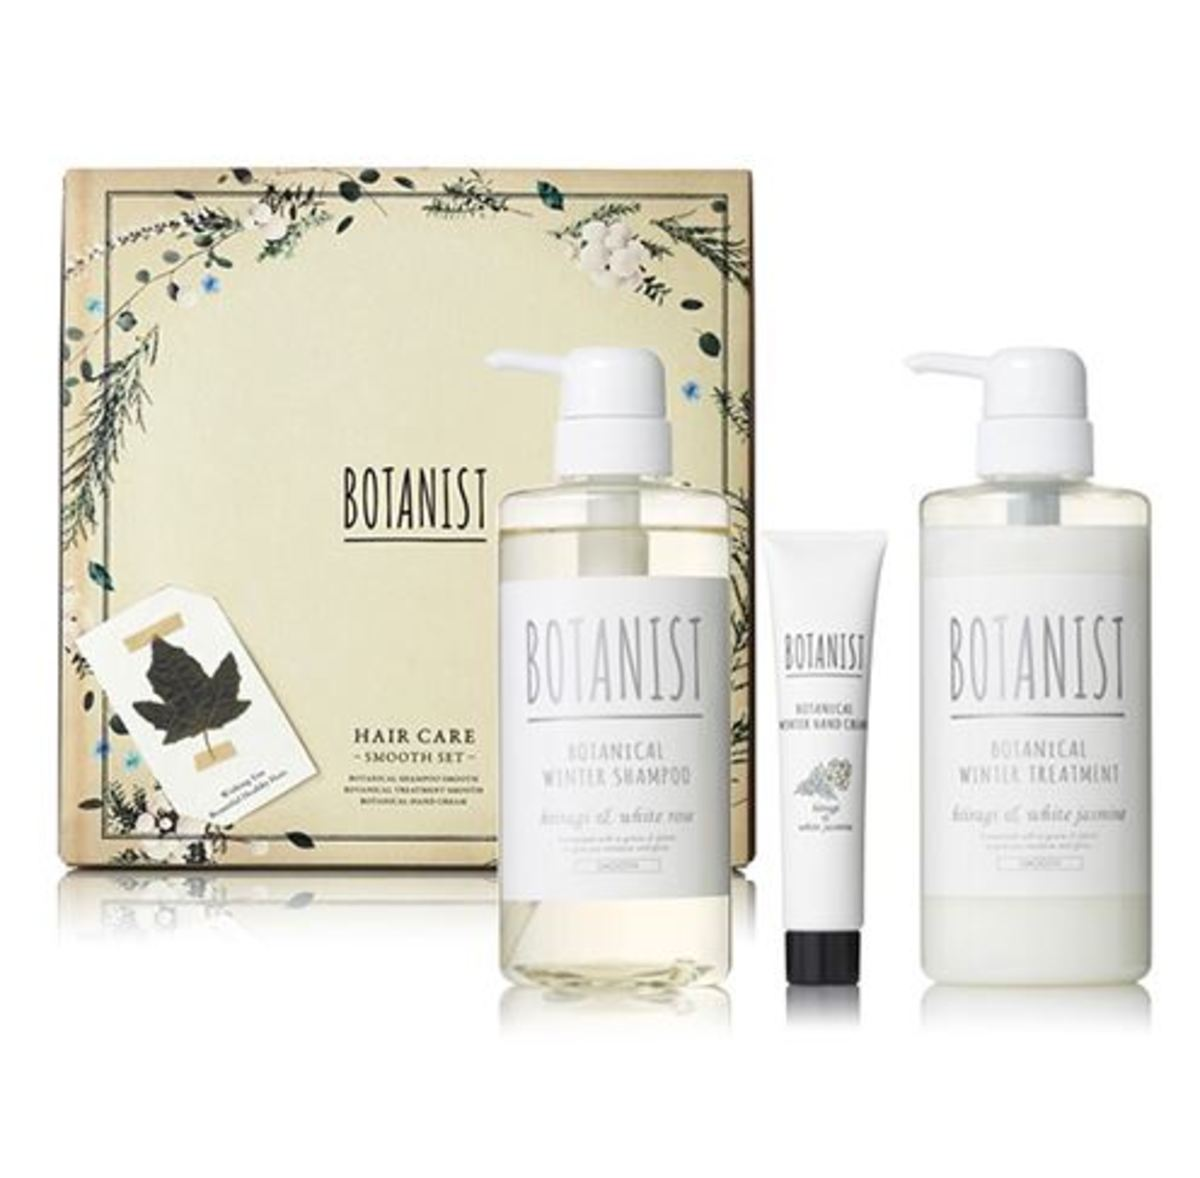 Botanical 3pcs Sets - Smooth (White) Shampoo & Conditioner 490g, Handcream 30g [Parallel Import]